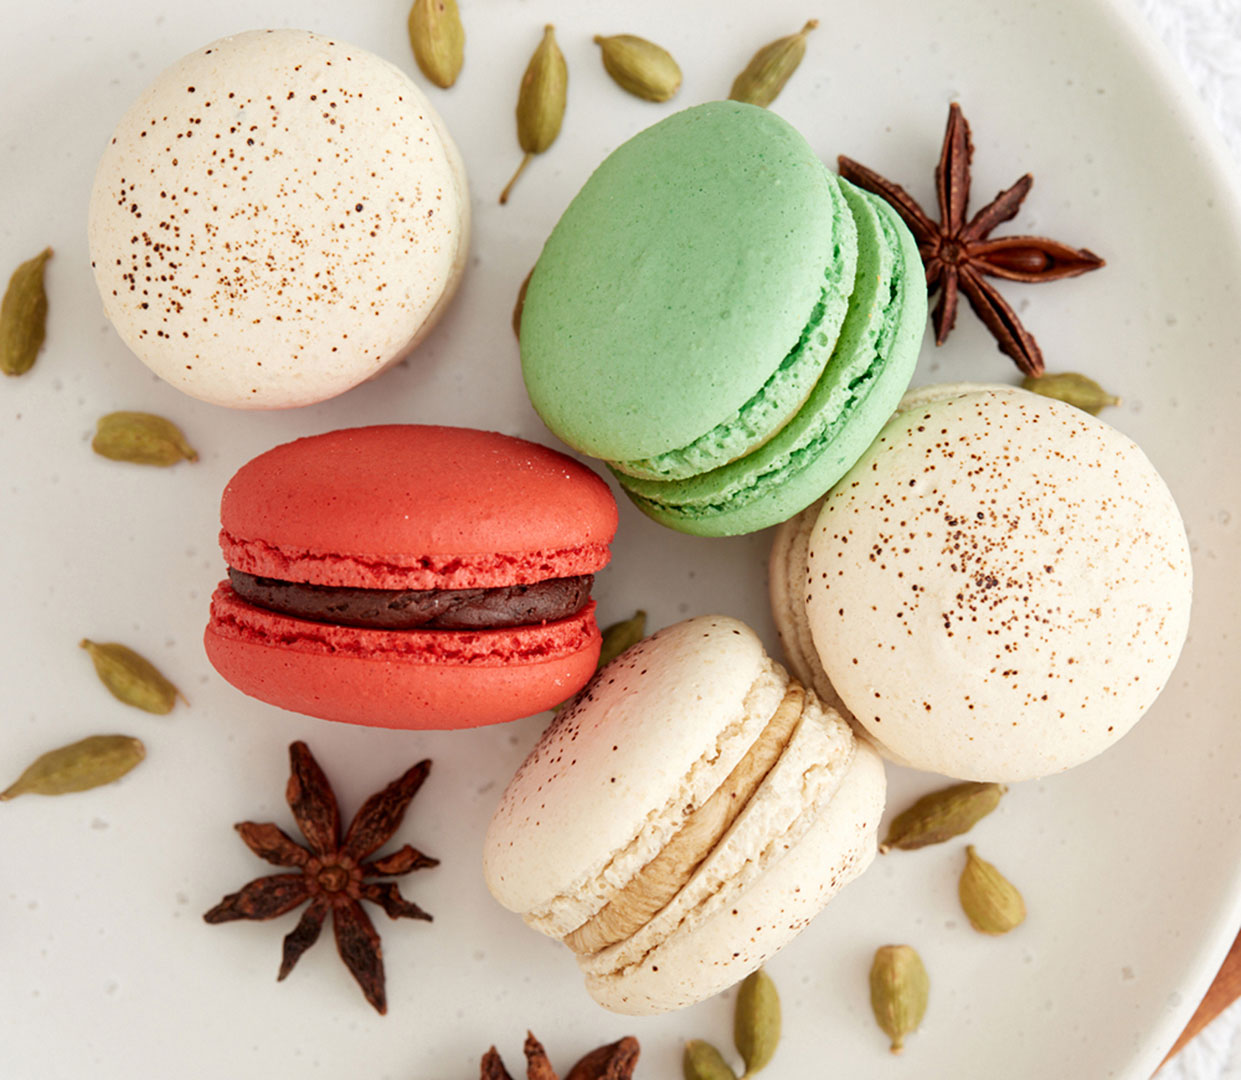 Food and beverage photographer Kate Benson shot and styled these white, red, and green macroons.